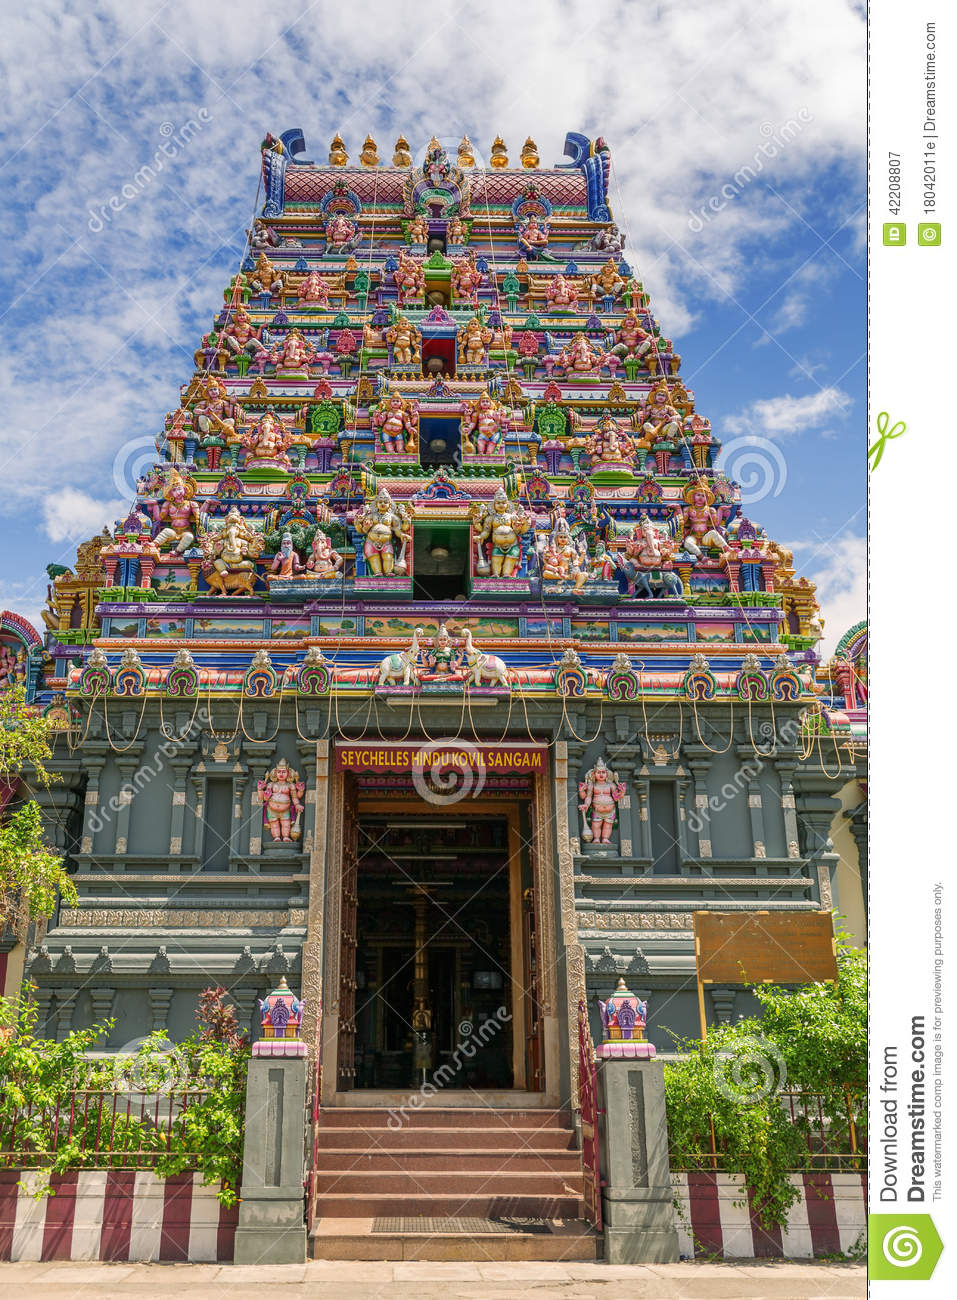 colorful facade of a hindu temple in victoria mahe seychelles stock image image 42208807. Black Bedroom Furniture Sets. Home Design Ideas